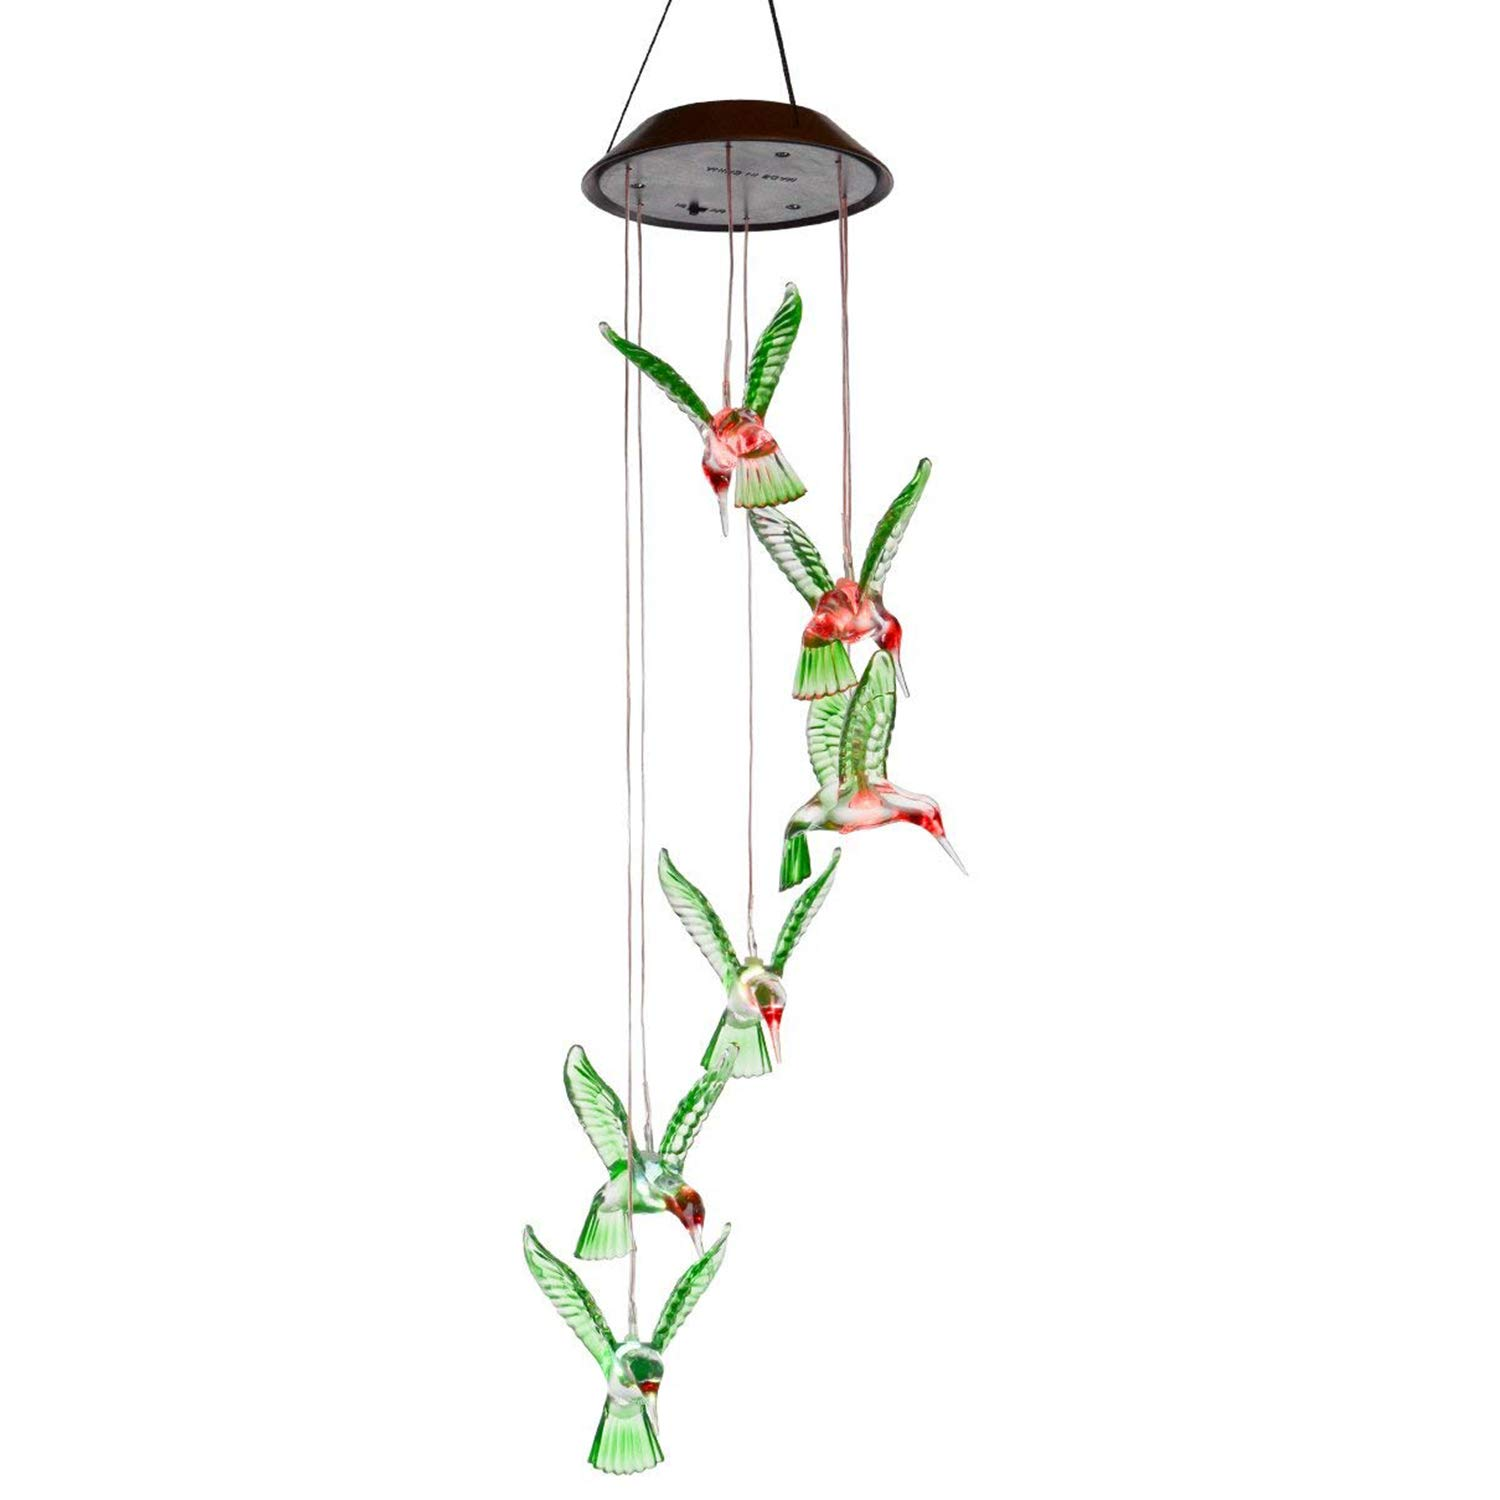 YQing Solar Hummingbird Wind Chimes, LED Changing Light Color Mobile Wind Chime, Waterproof Six Hummingbird Wind Chimes For Home,Party, Garden Decoration